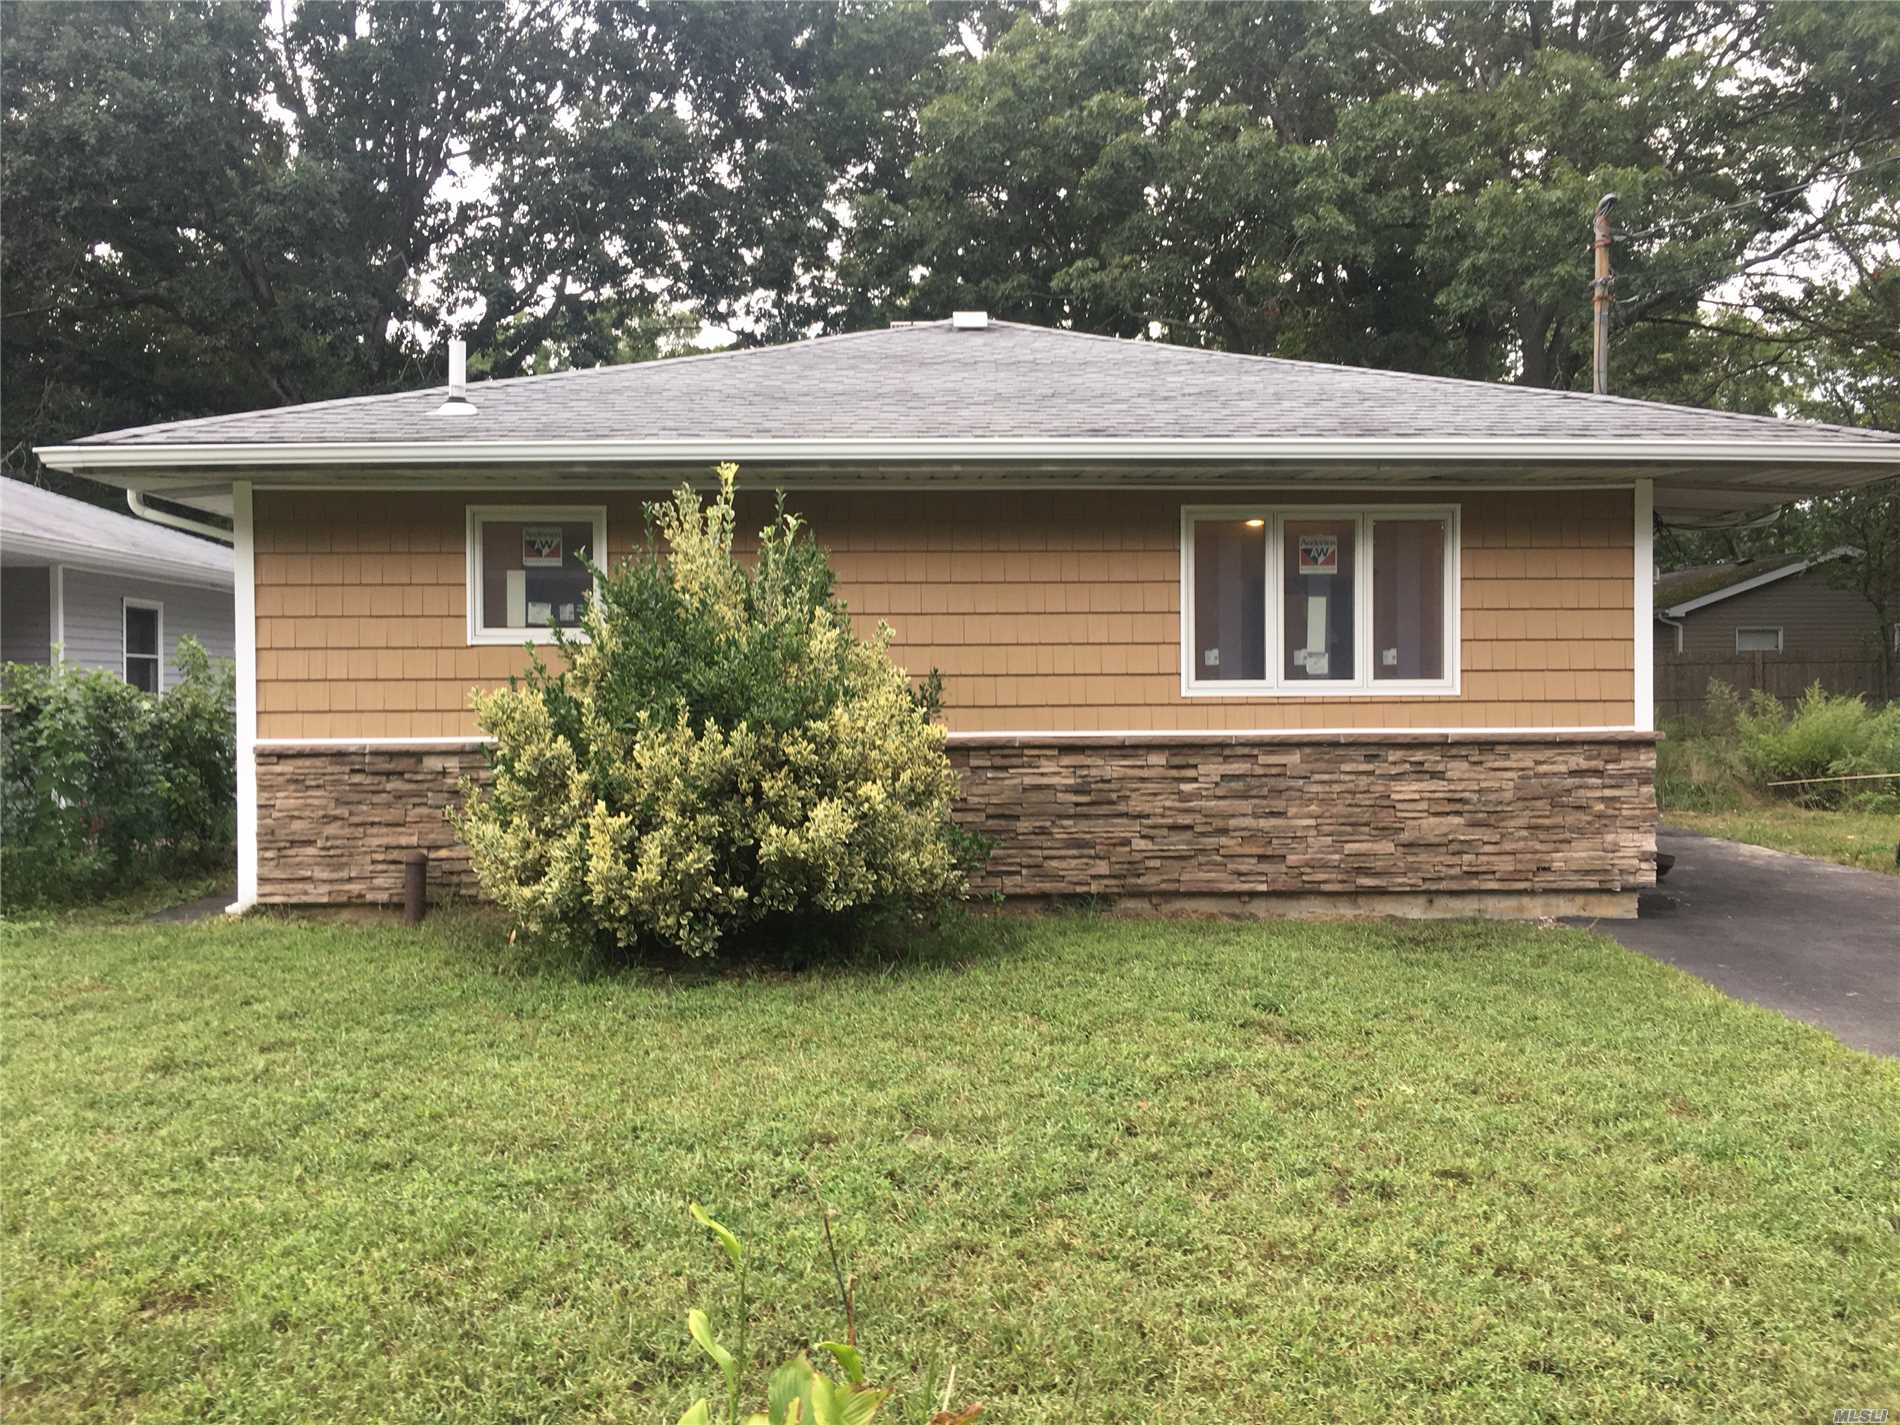 Beautifully Renovated Ranch. New Kitchen Cabinets, Granite, Stainless Steel Appliances, New Bathroom, Flooring, New Siding/Windows. This Home Was Done Top To Bottom. Ready For A Family !!!